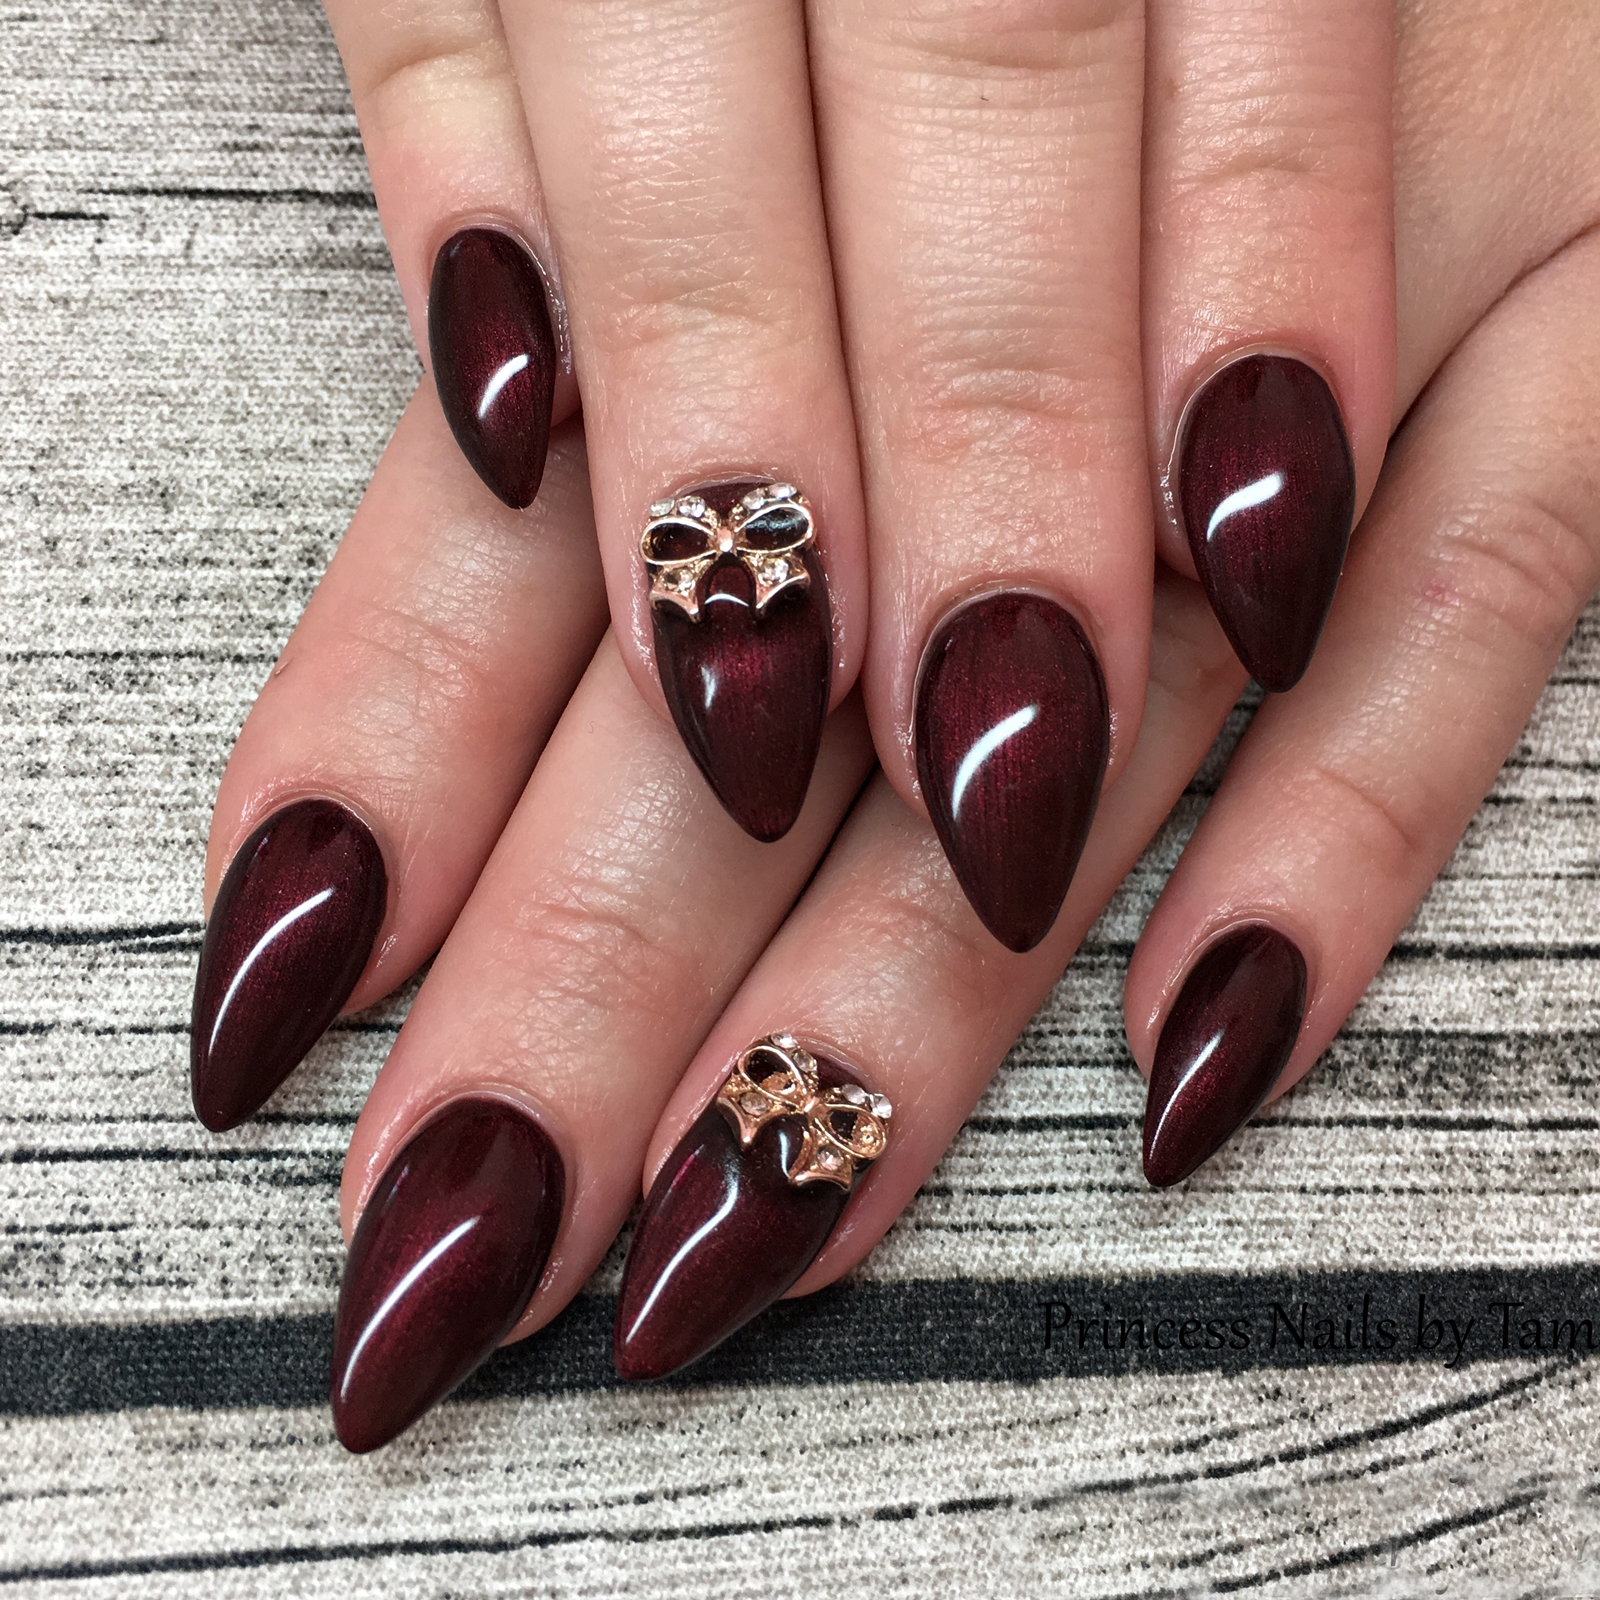 Nägel Vorlagen Nail Art Inspiration 1 Fashionladyloves